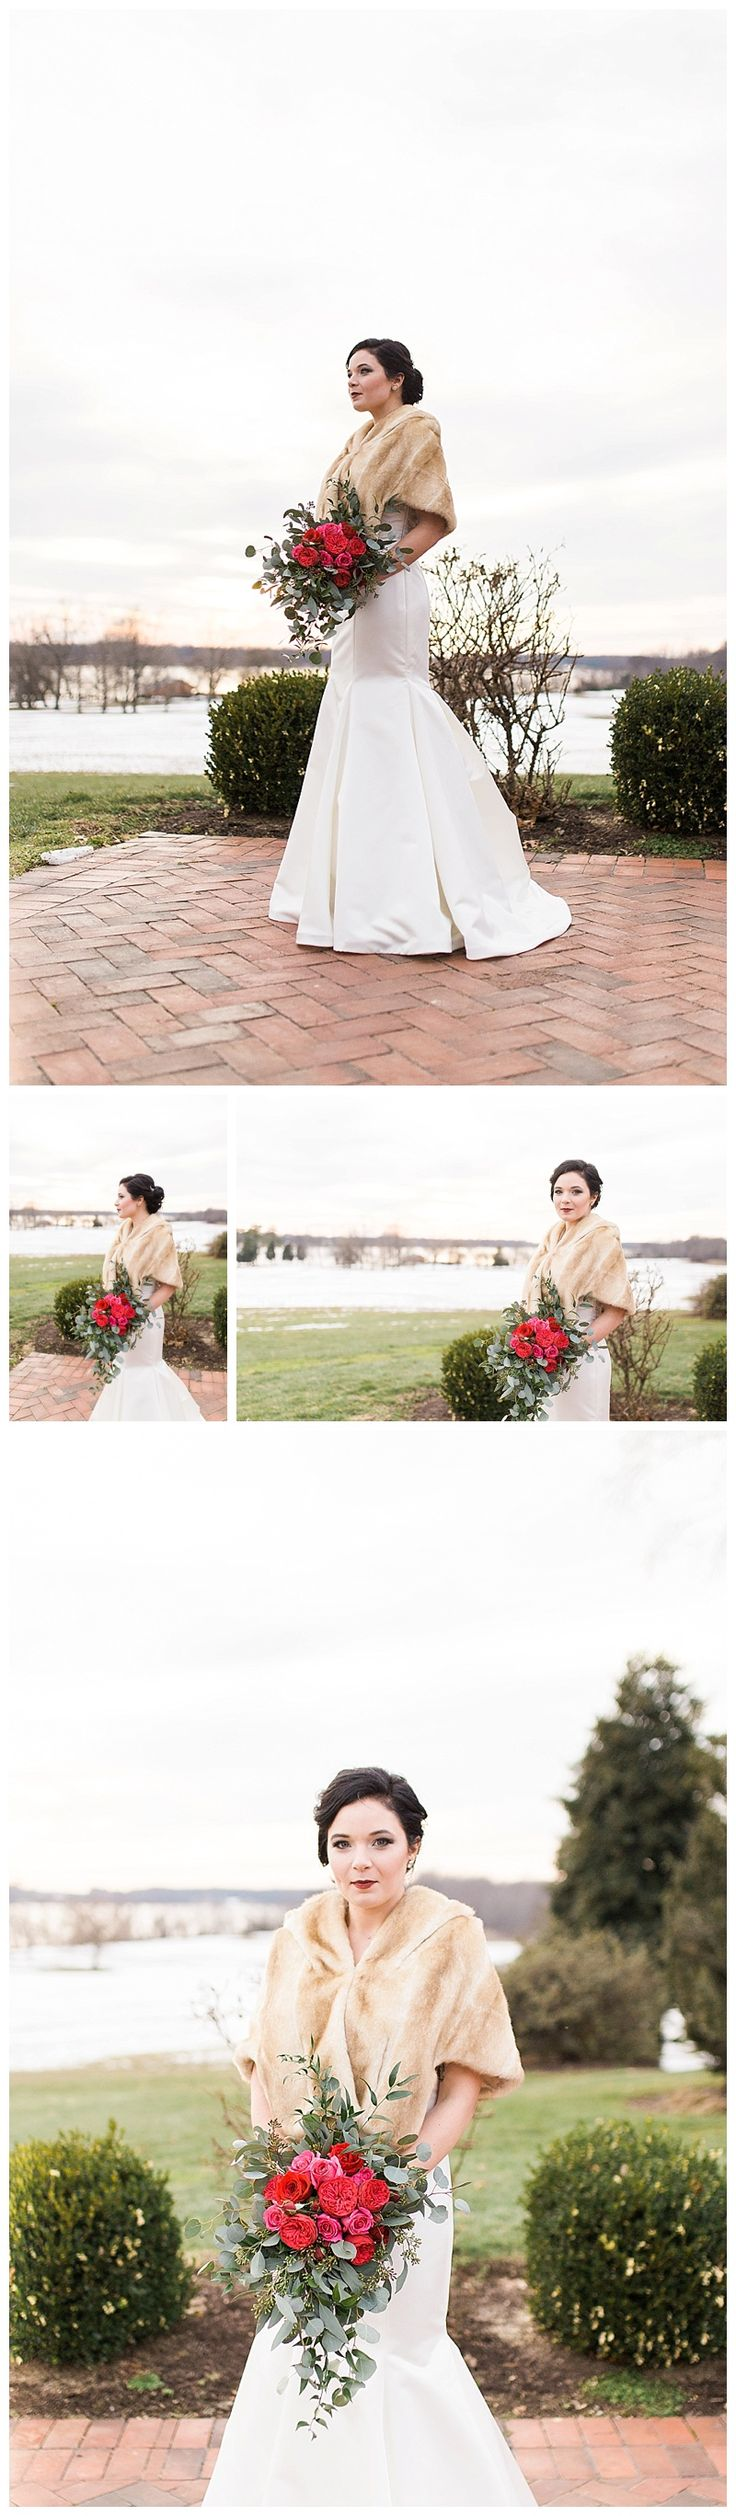 1783 Photography Brittland Manor Styled Shoot Bridal Gown Love And Lace Consignment Boutique